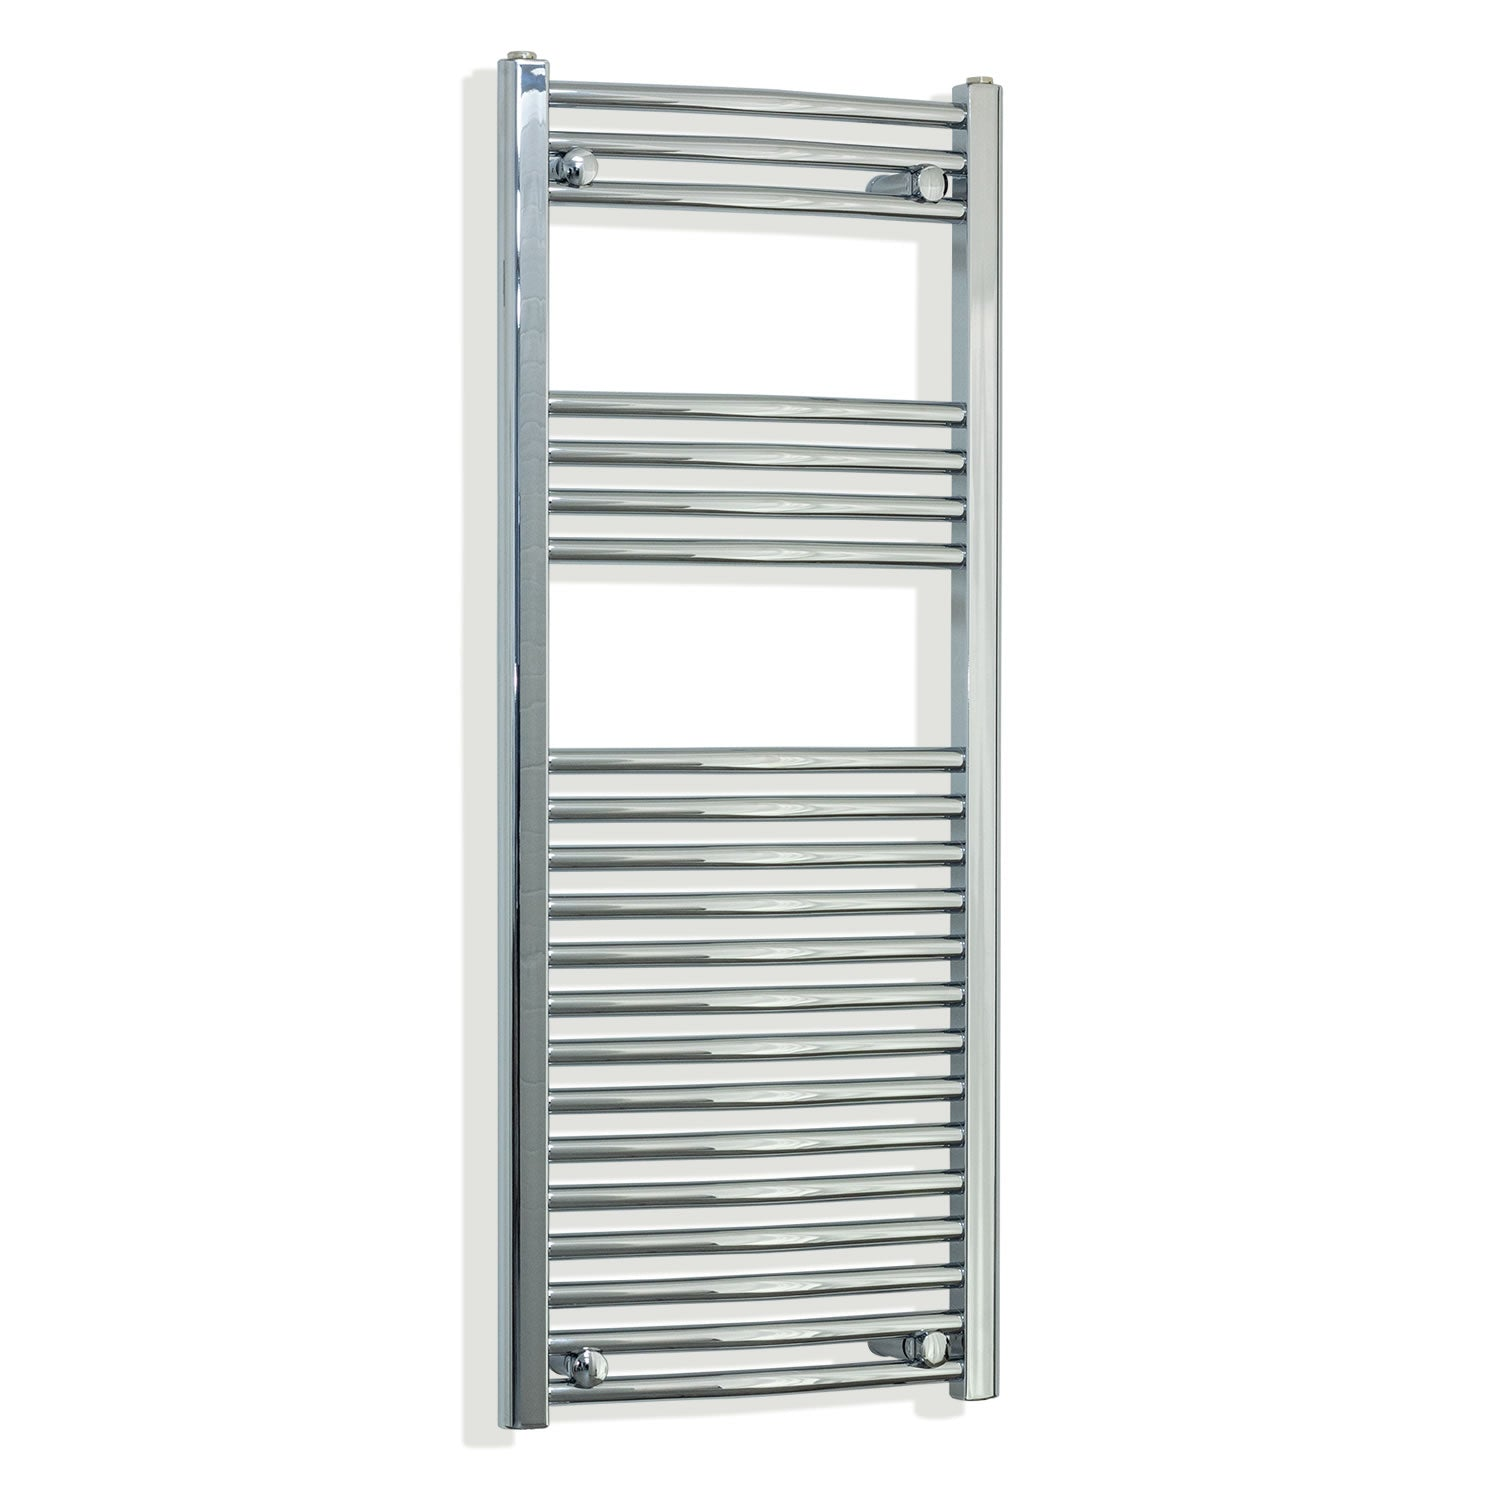 450mm Wide 1100mm High Curved Chrome Heated Towel Rail Radiator HTR,Towel Rail Only